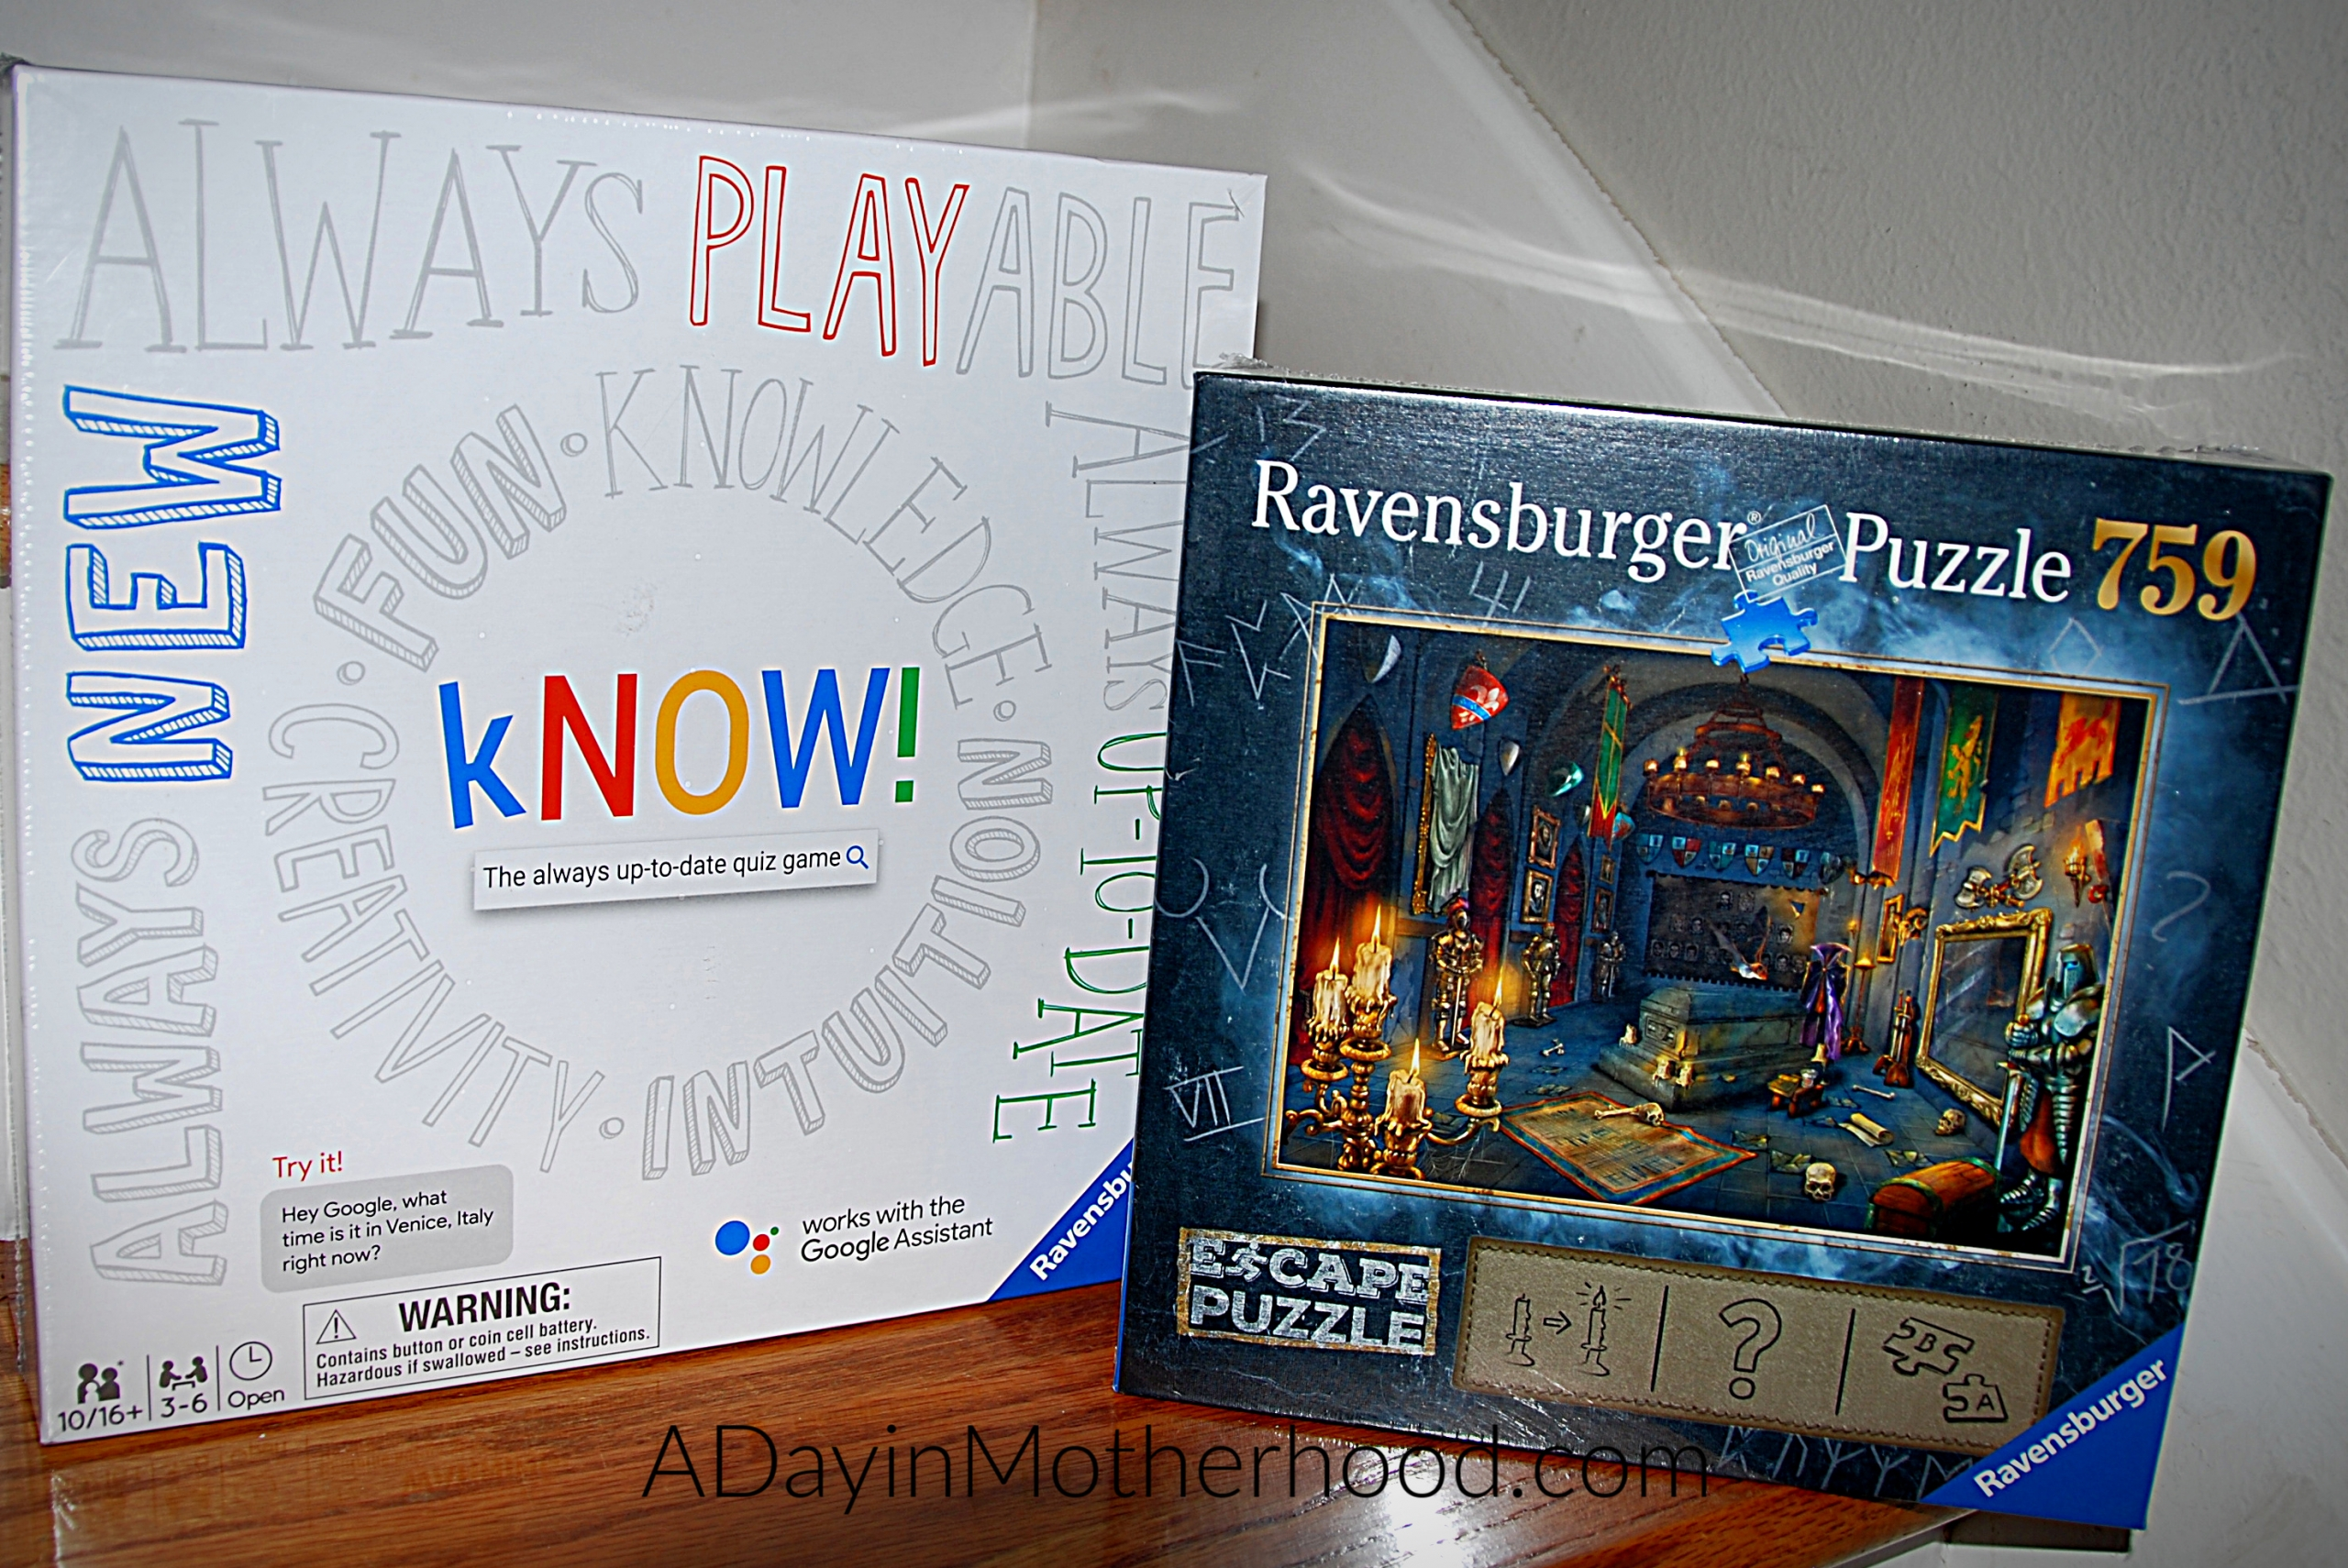 Gifts That Will Rock Into The New Year-a photo of 2 board games on ADayinMotherhood.com